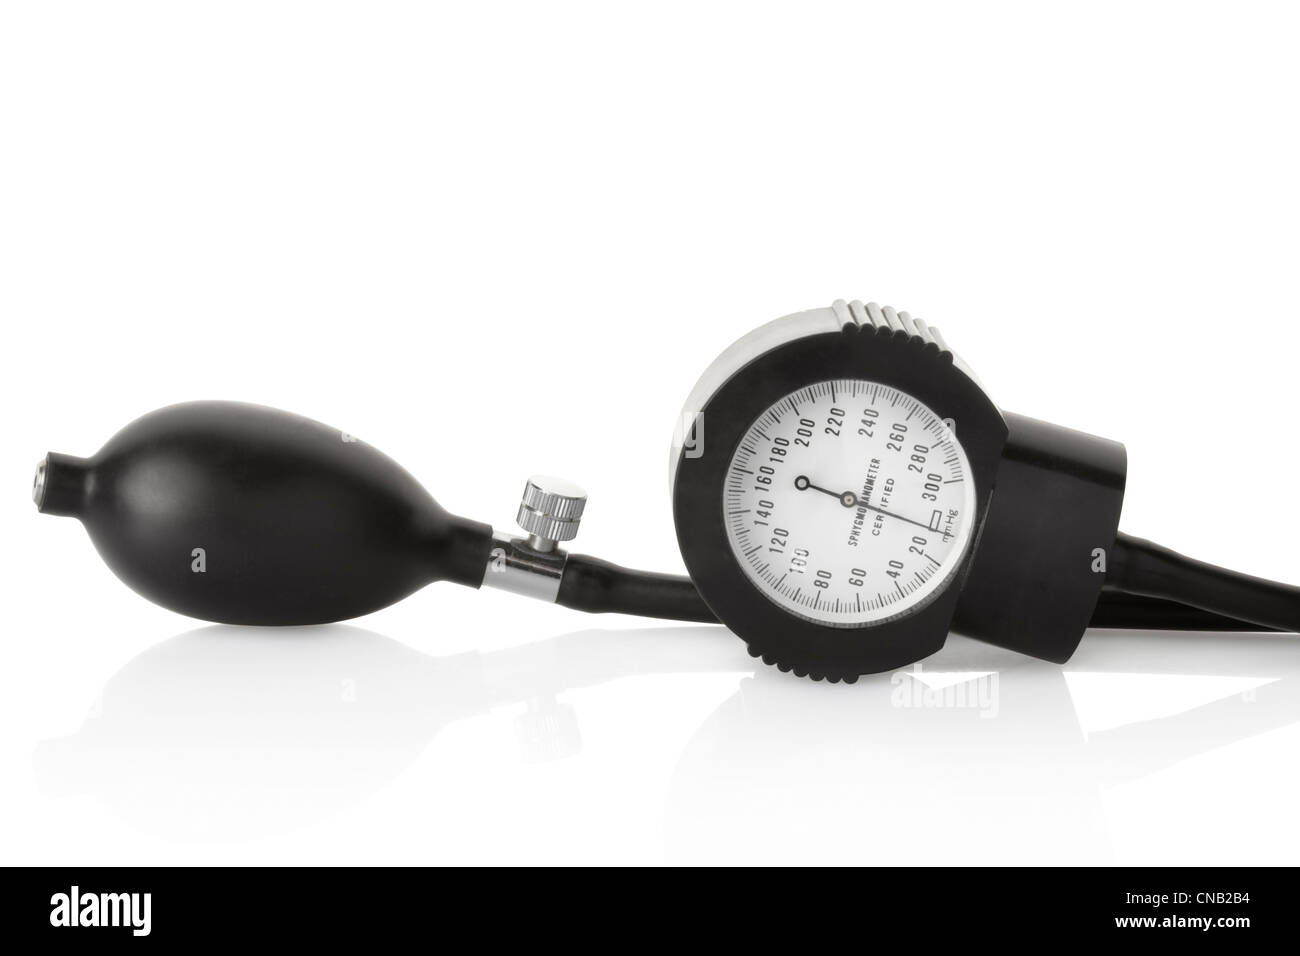 Sphygmomanometer, blood pressure medical instrument - Stock Image